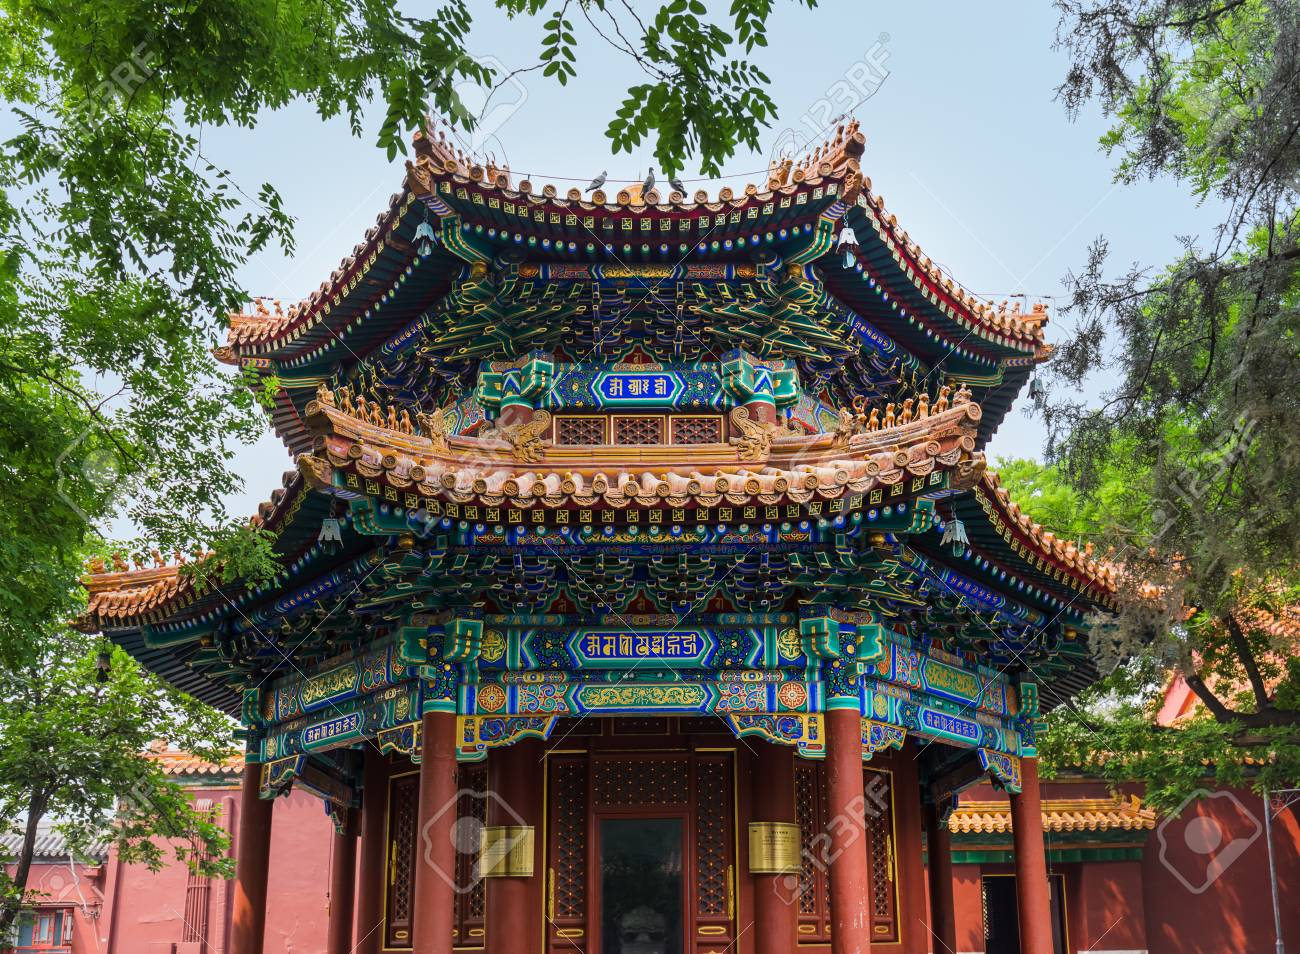 102871282-lama-yonghe-temple-in-beijing-china-architecture-background.jpg